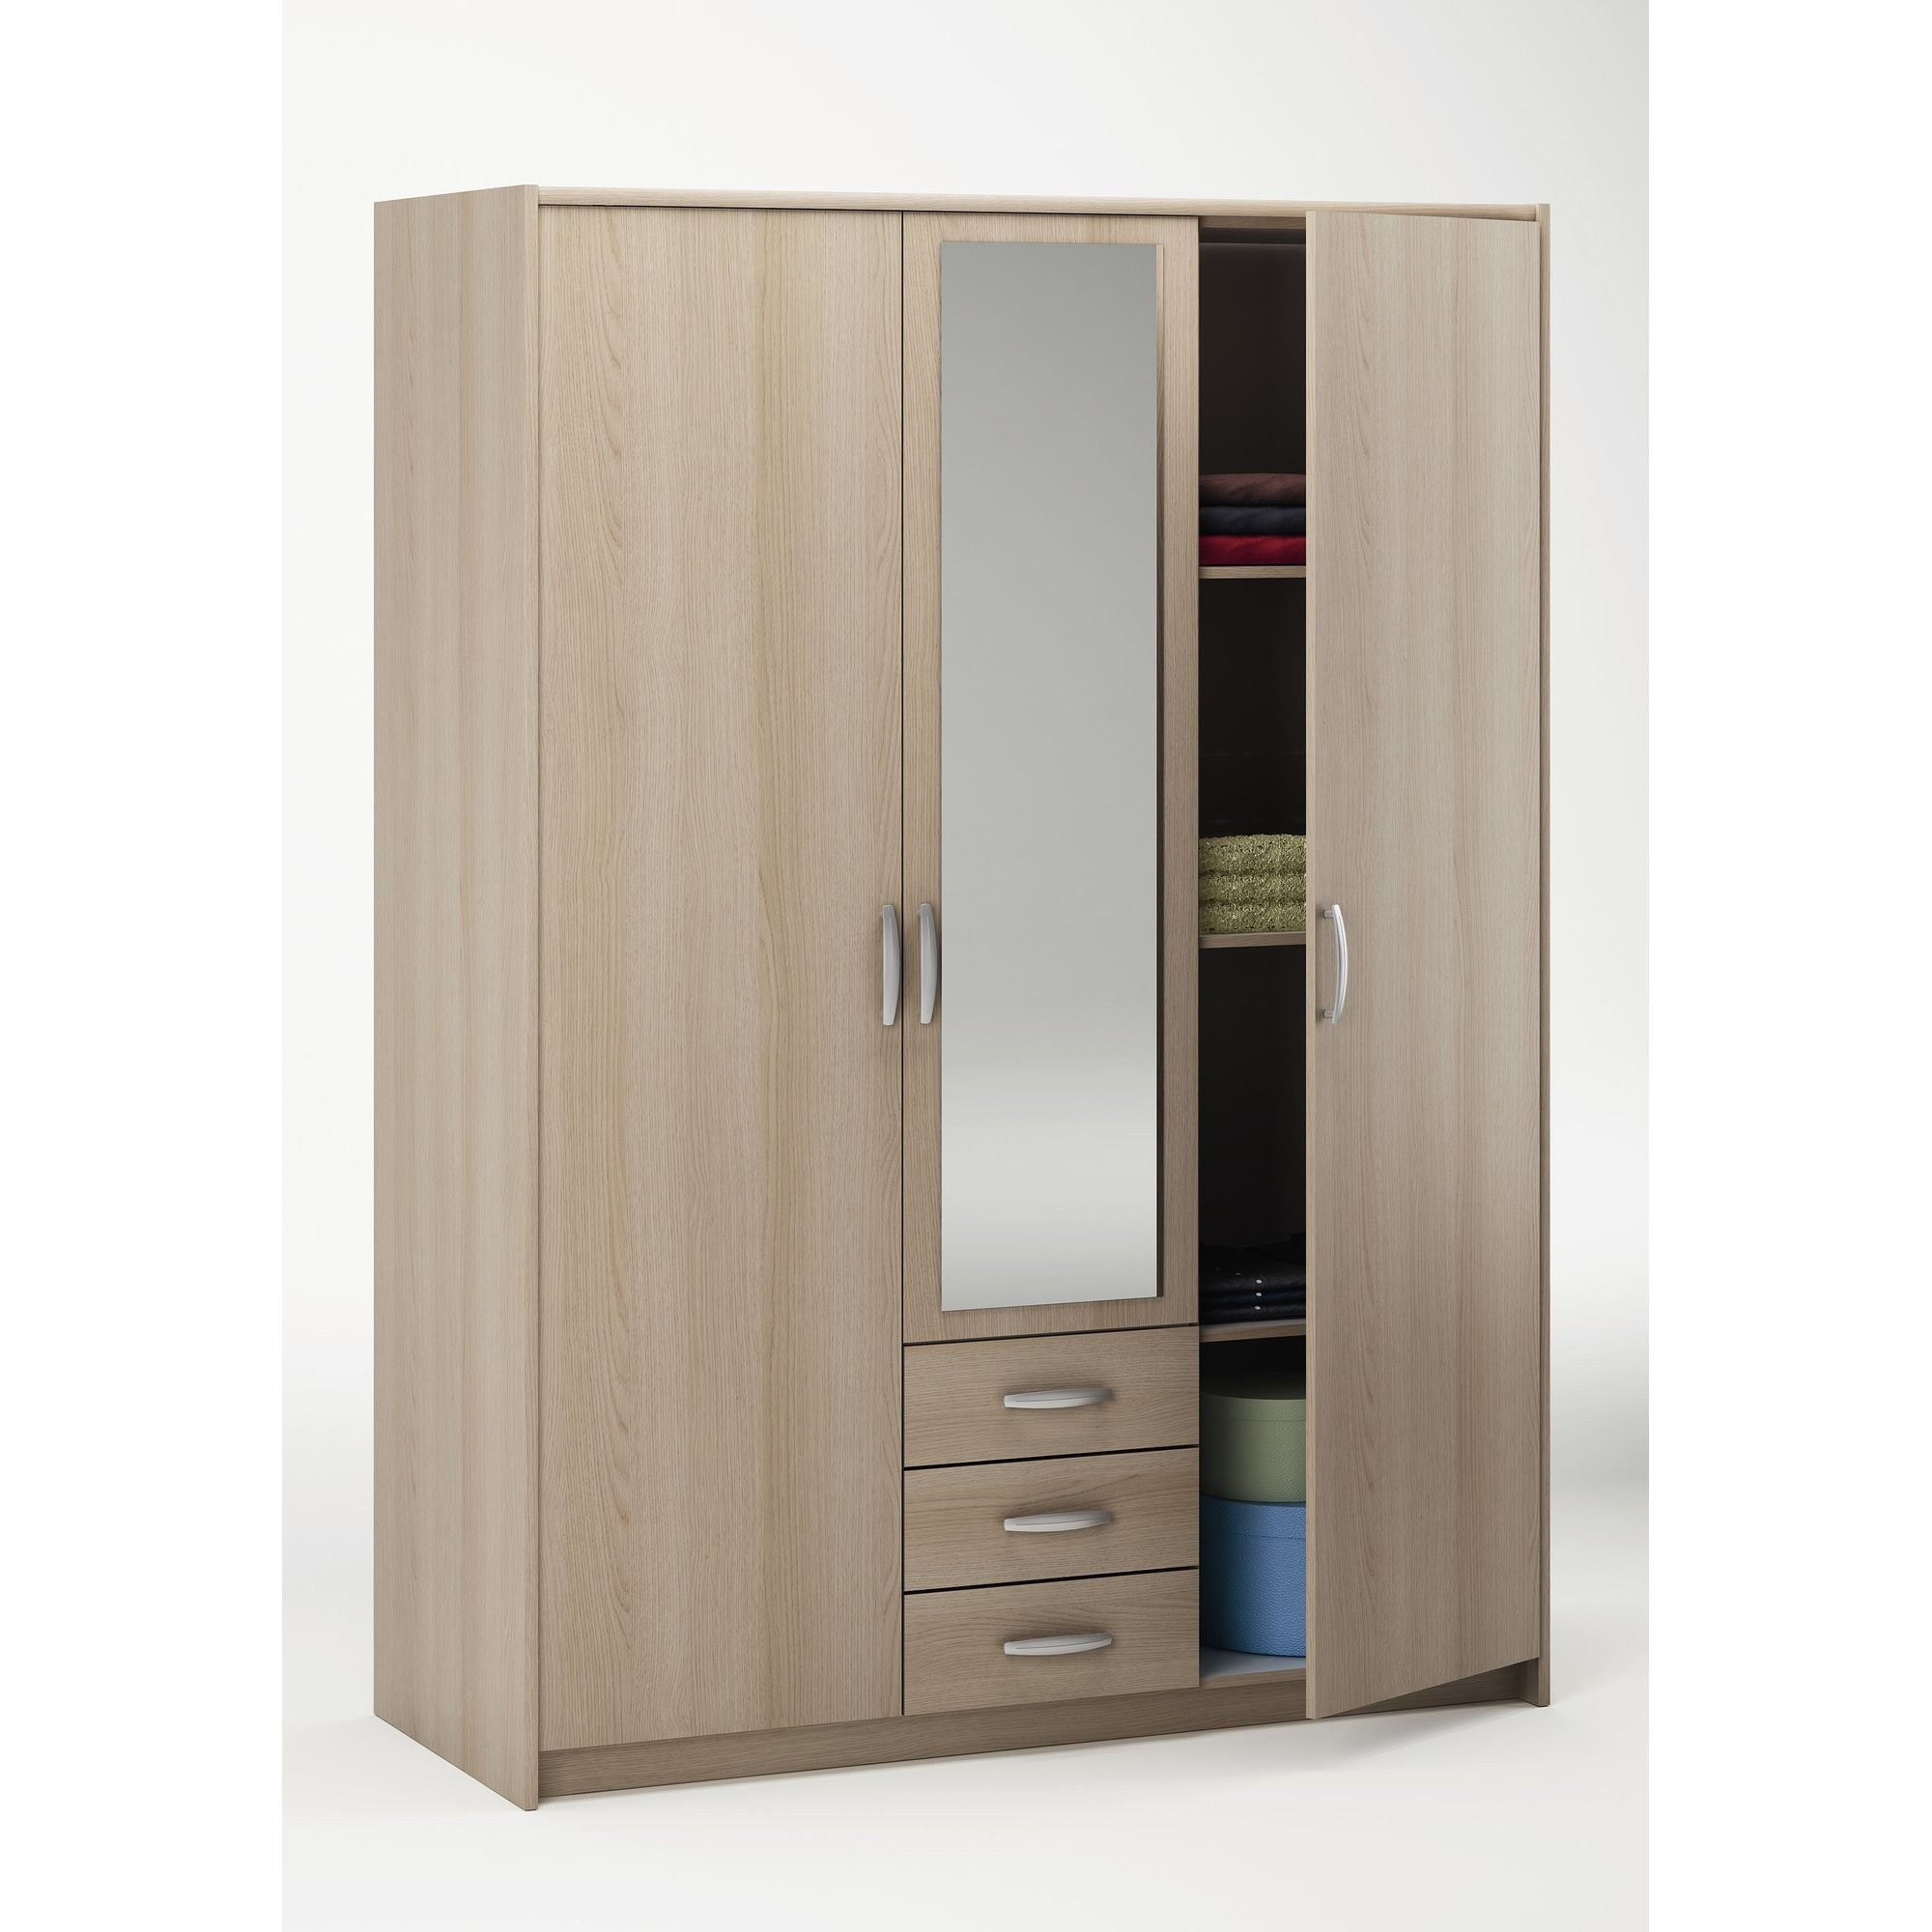 Altruna Elmont Wardrobe at Tesco Direct